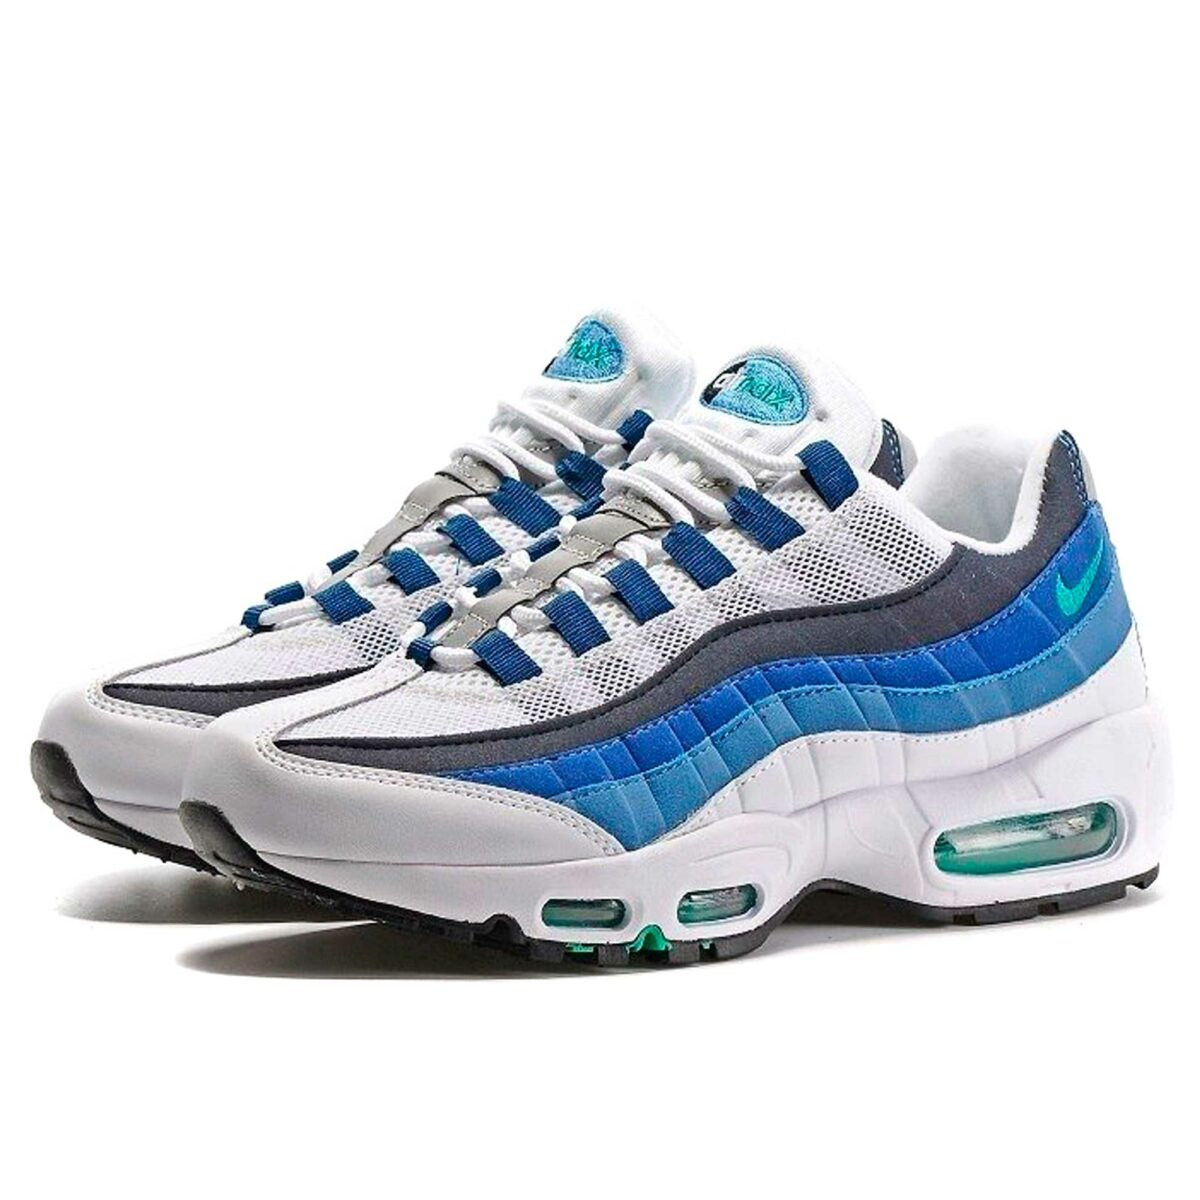 nike air max 95 blue green купить